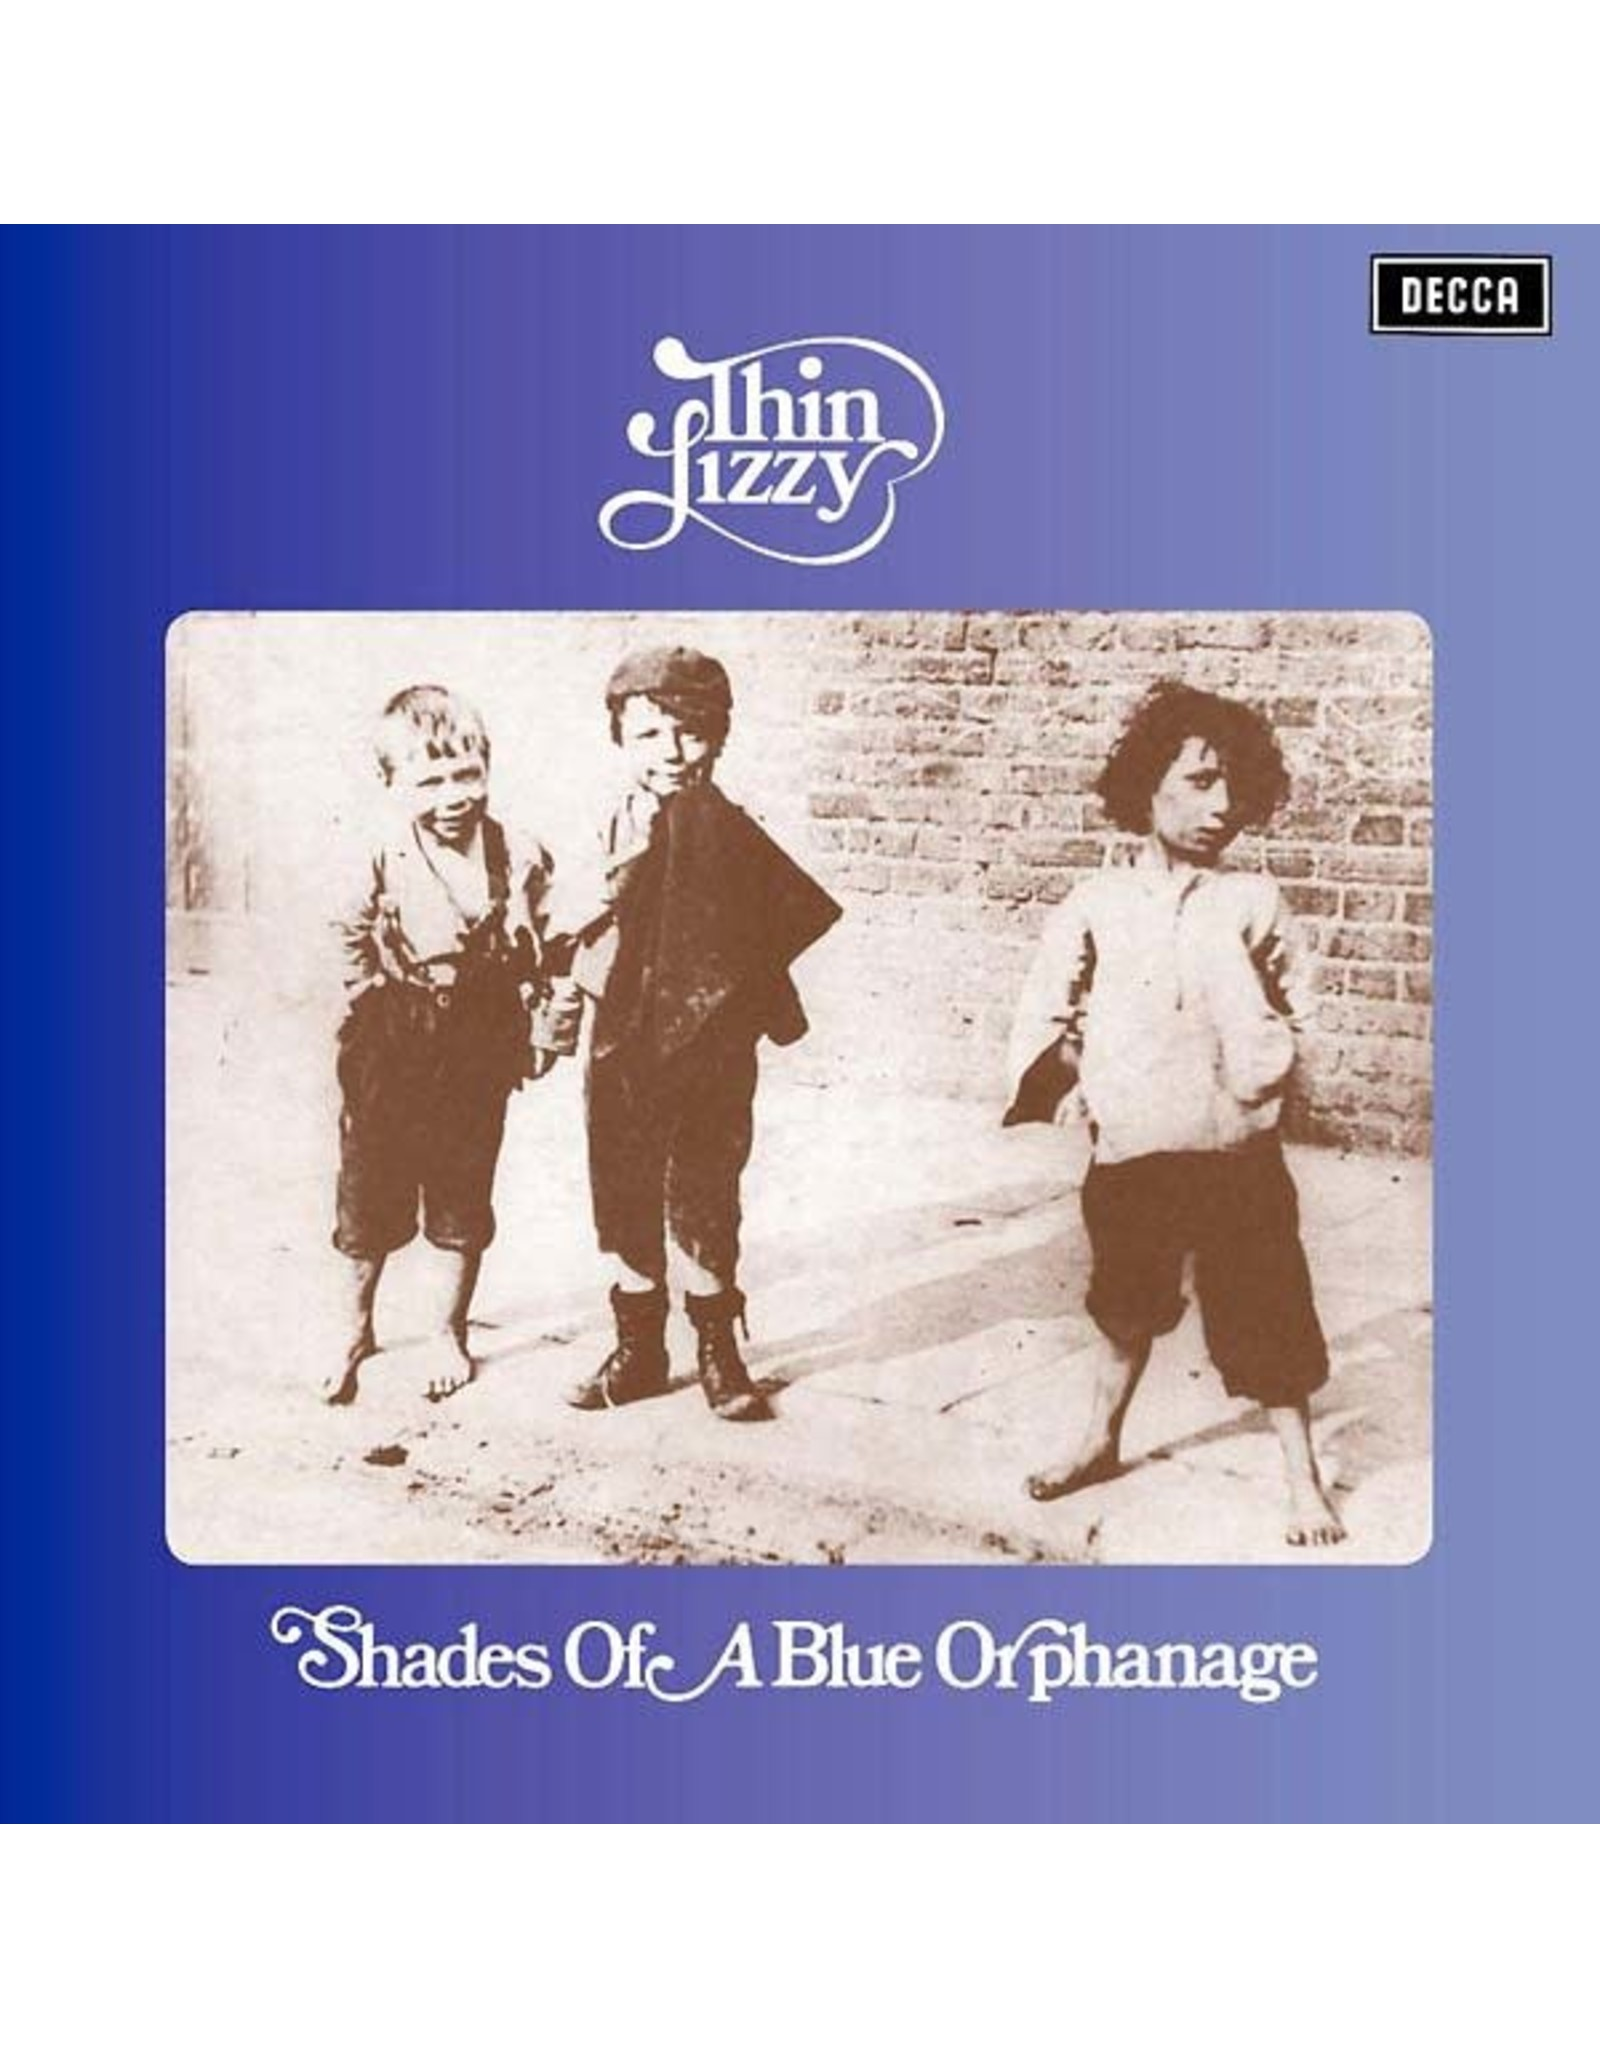 New Vinyl Thin Lizzy - Shades Of A Blue Orphanage LP